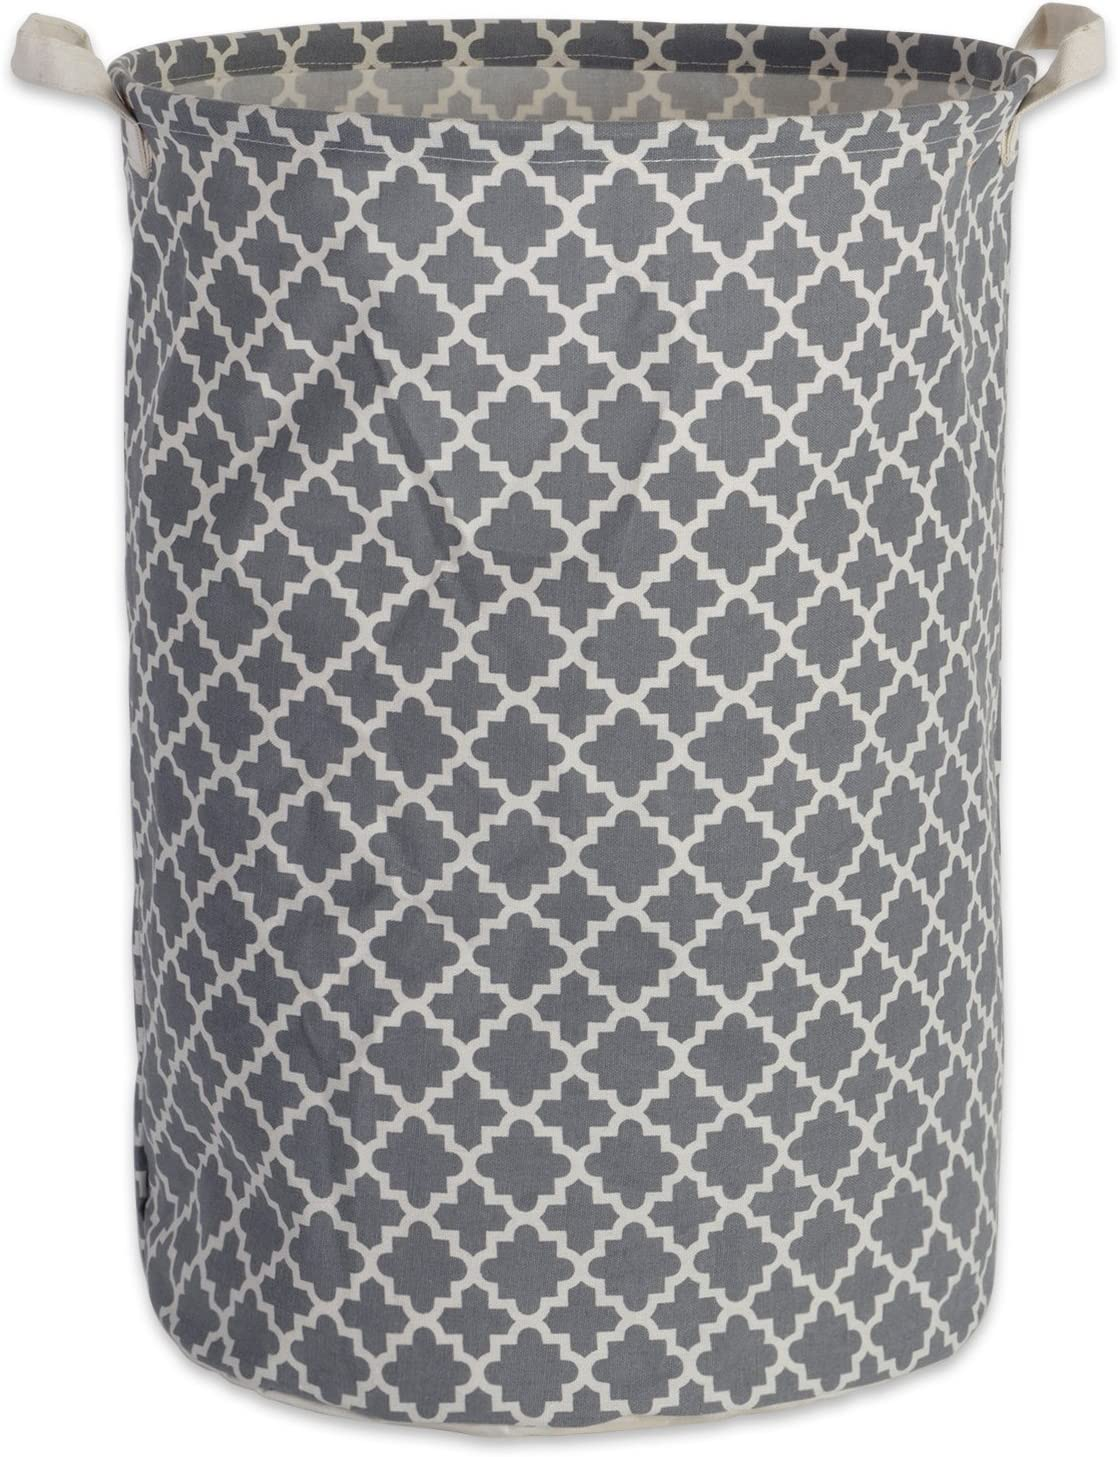 DII Cotton/Polyester PE Coated Assorted Laundry Bins, Hamper, Gray Lattice